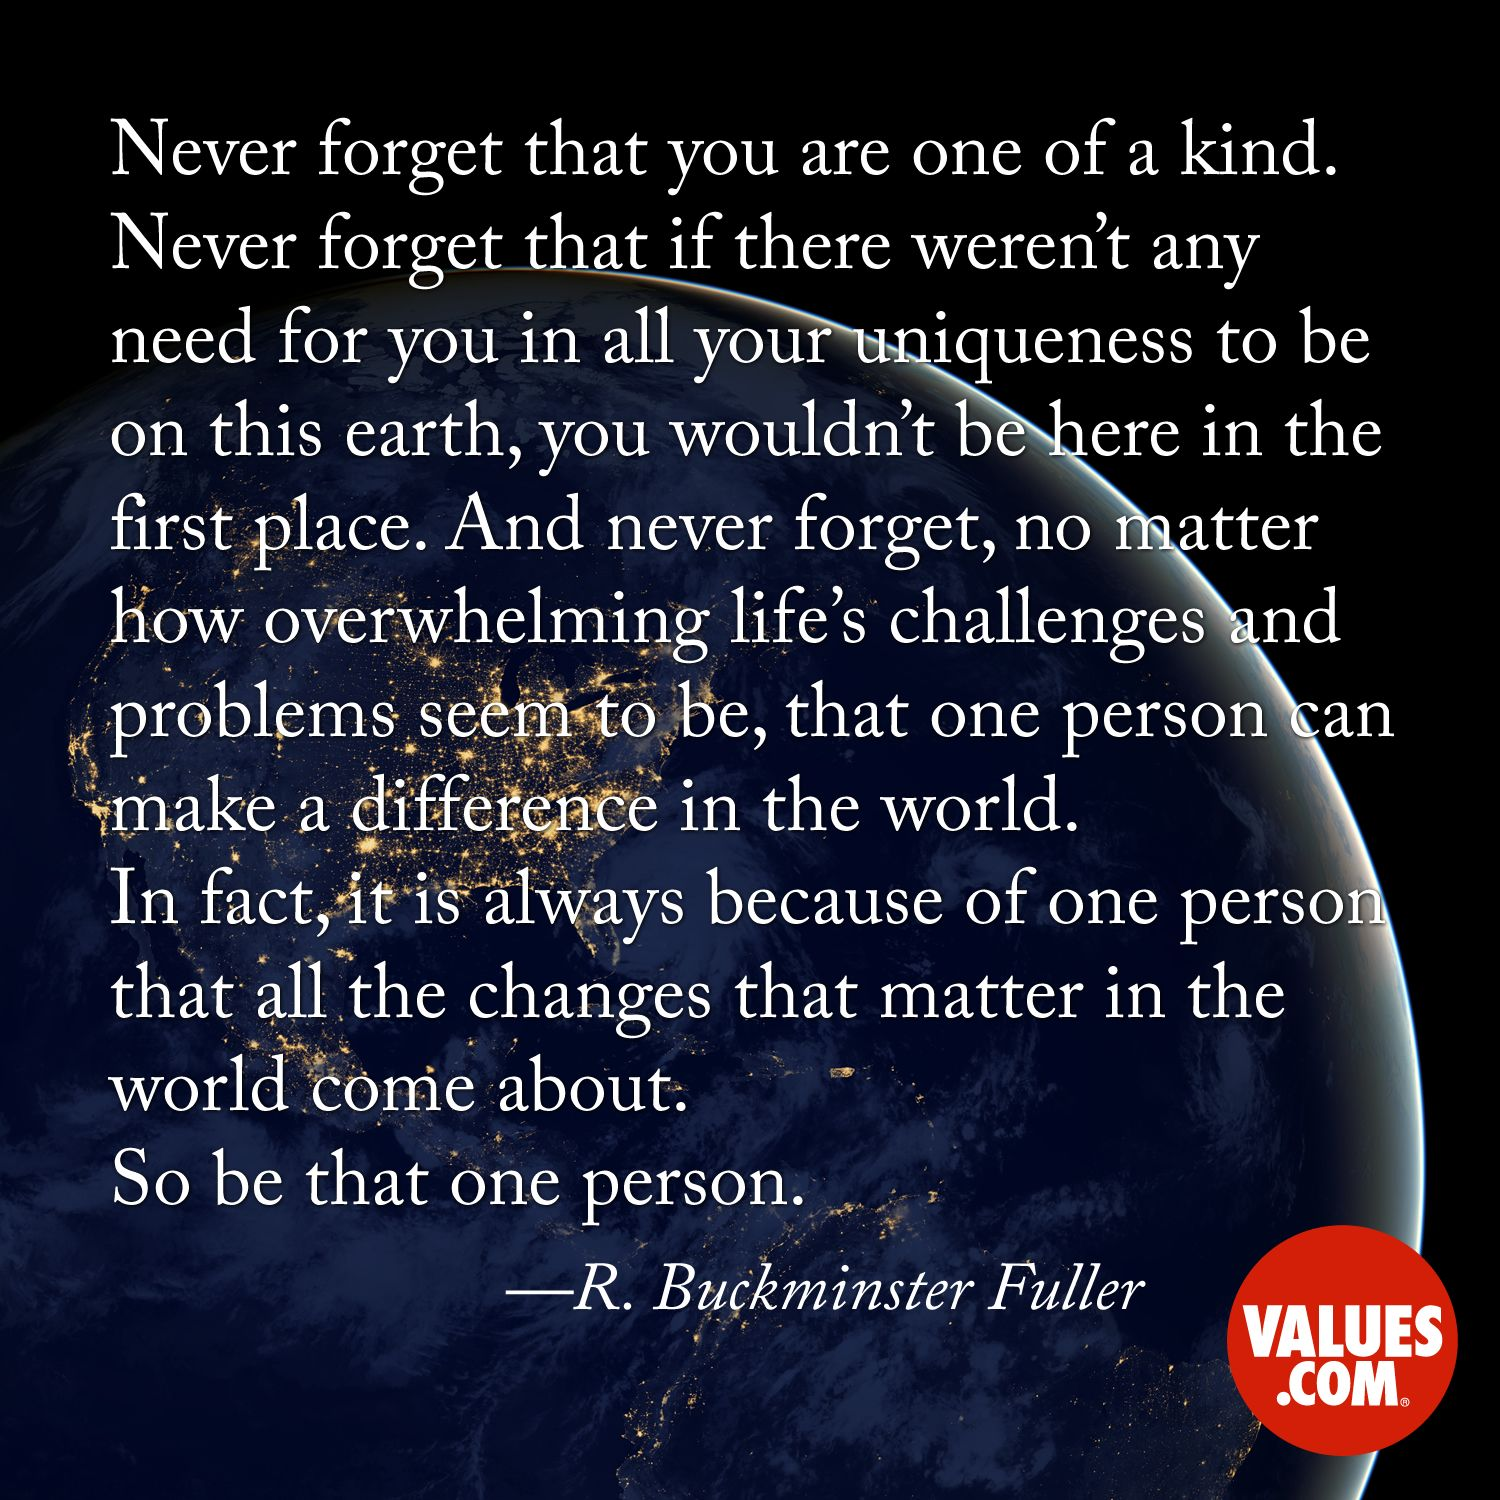 Inspirational Quote  Values.com  Inspirational quotes, Value